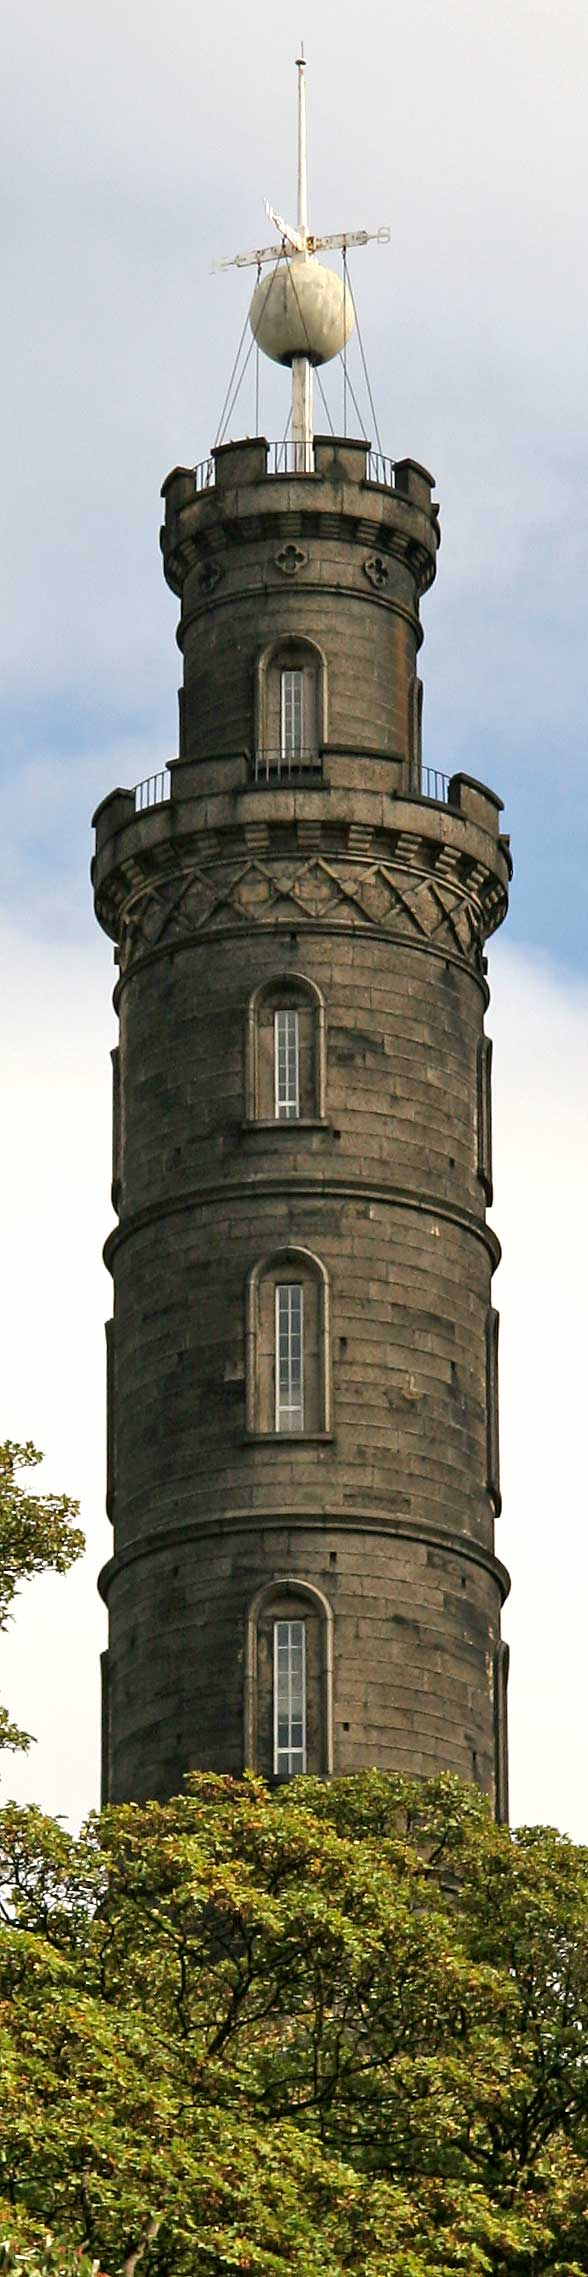 The Nelson Monument on Calton Hill.  The time ball photographed at 11.59pm on October 2, 2006  -  waiting to be lowered at 1pm